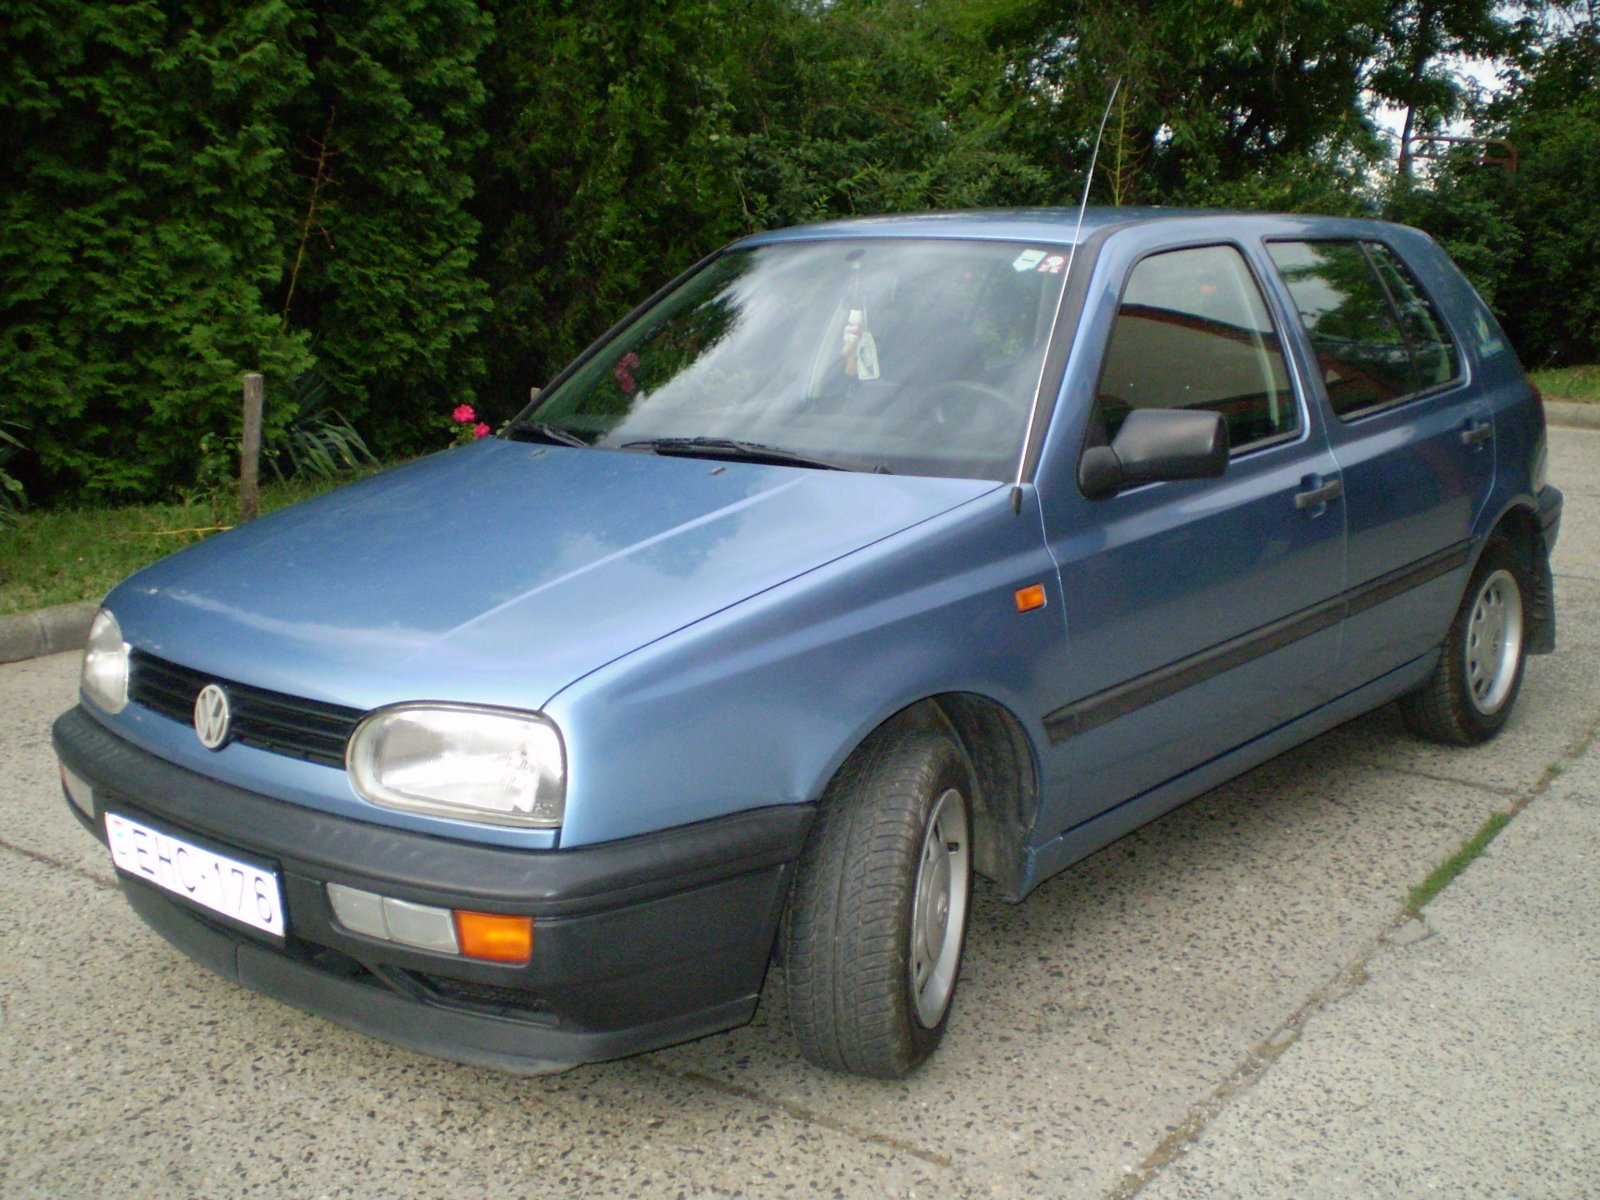 volkswagen golf 1994 review amazing pictures and images look at the car. Black Bedroom Furniture Sets. Home Design Ideas